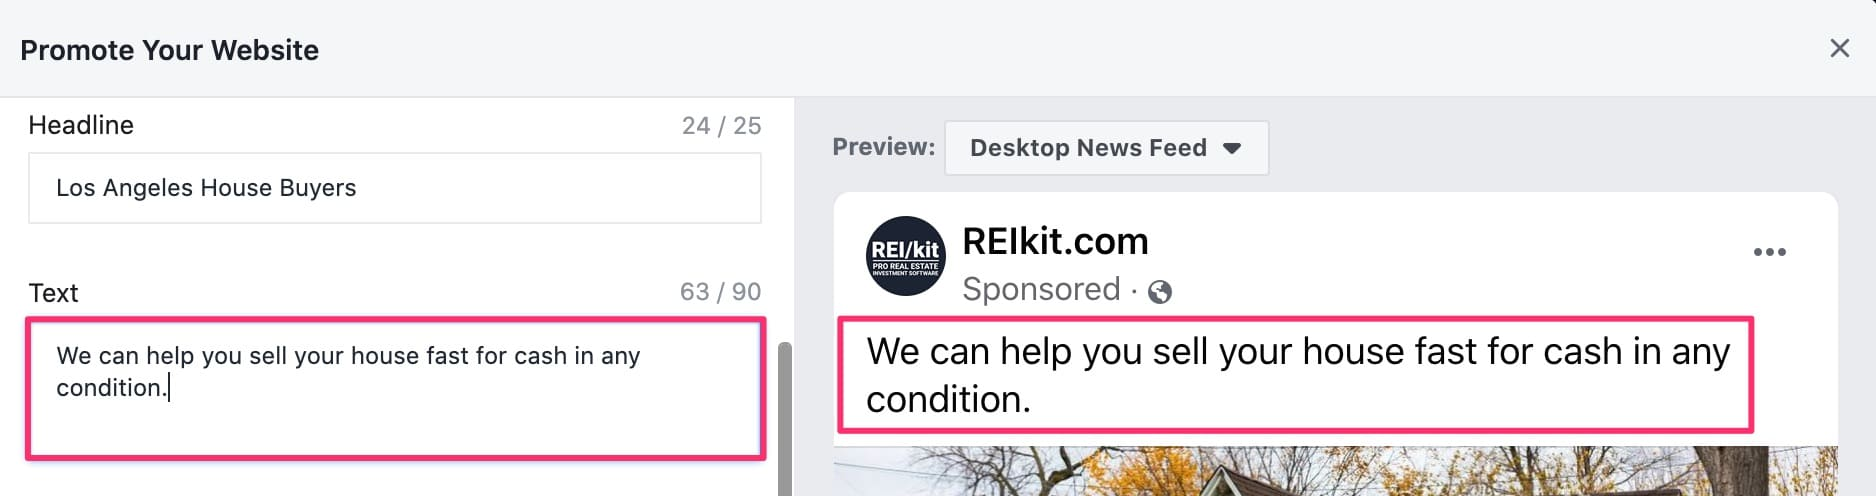 Ad copy text in Facebook ad creation interface